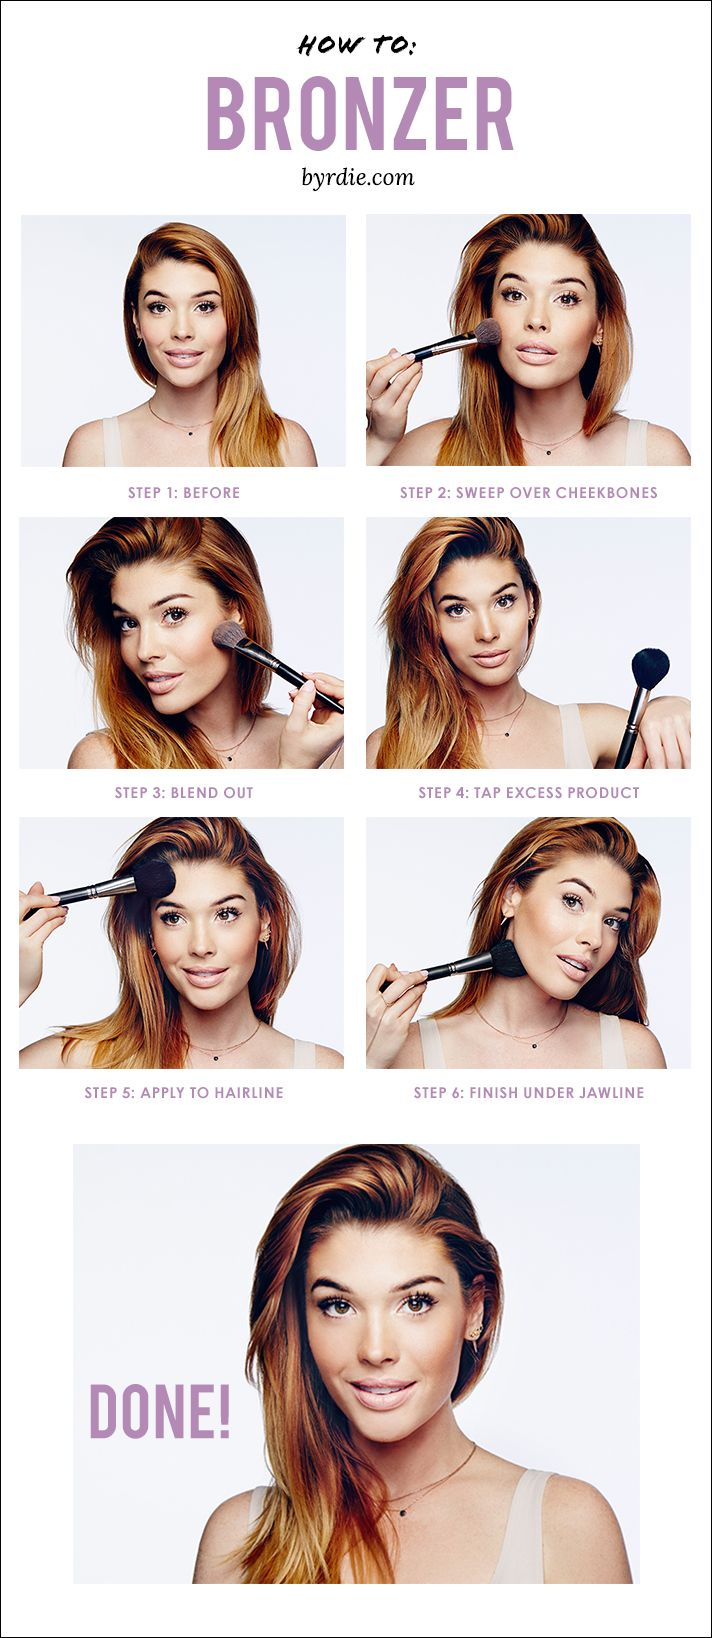 The best way to apply bronzer: tips and #tutorial from celebrity makeup artist Lauren Andersen. // #makeup #beauty